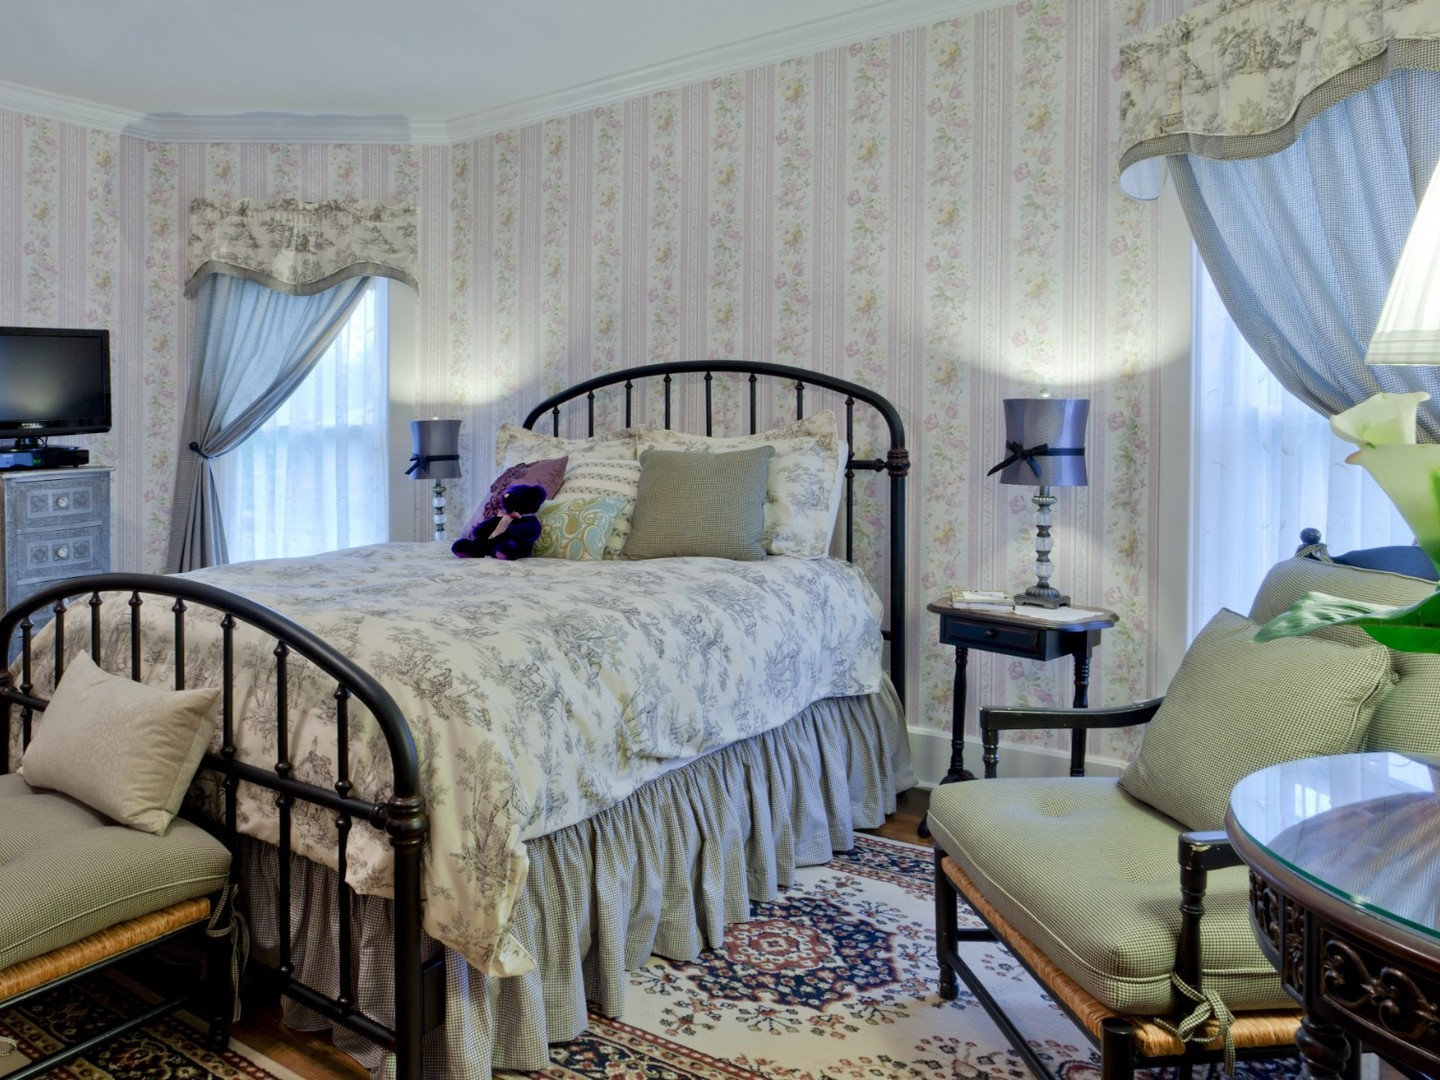 A bedroom with a bed and desk in a room at Garver House Bed and Breakfast.